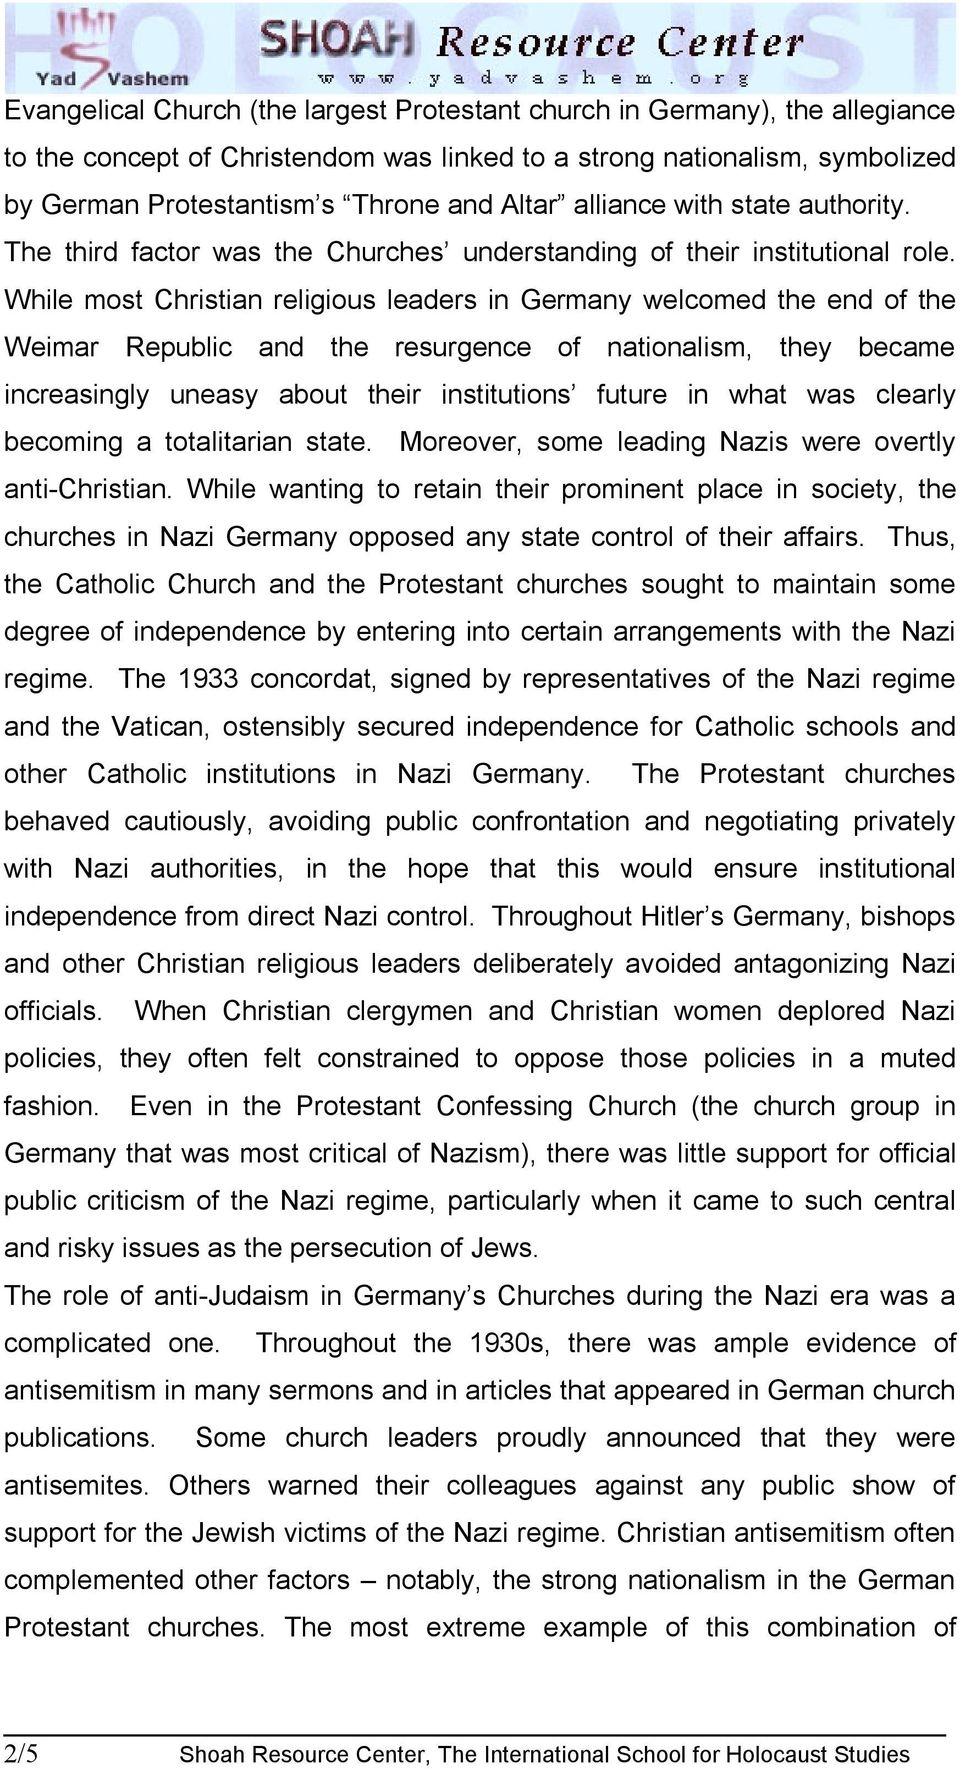 While most Christian religious leaders in Germany welcomed the end of the Weimar Republic and the resurgence of nationalism, they became increasingly uneasy about their institutions future in what